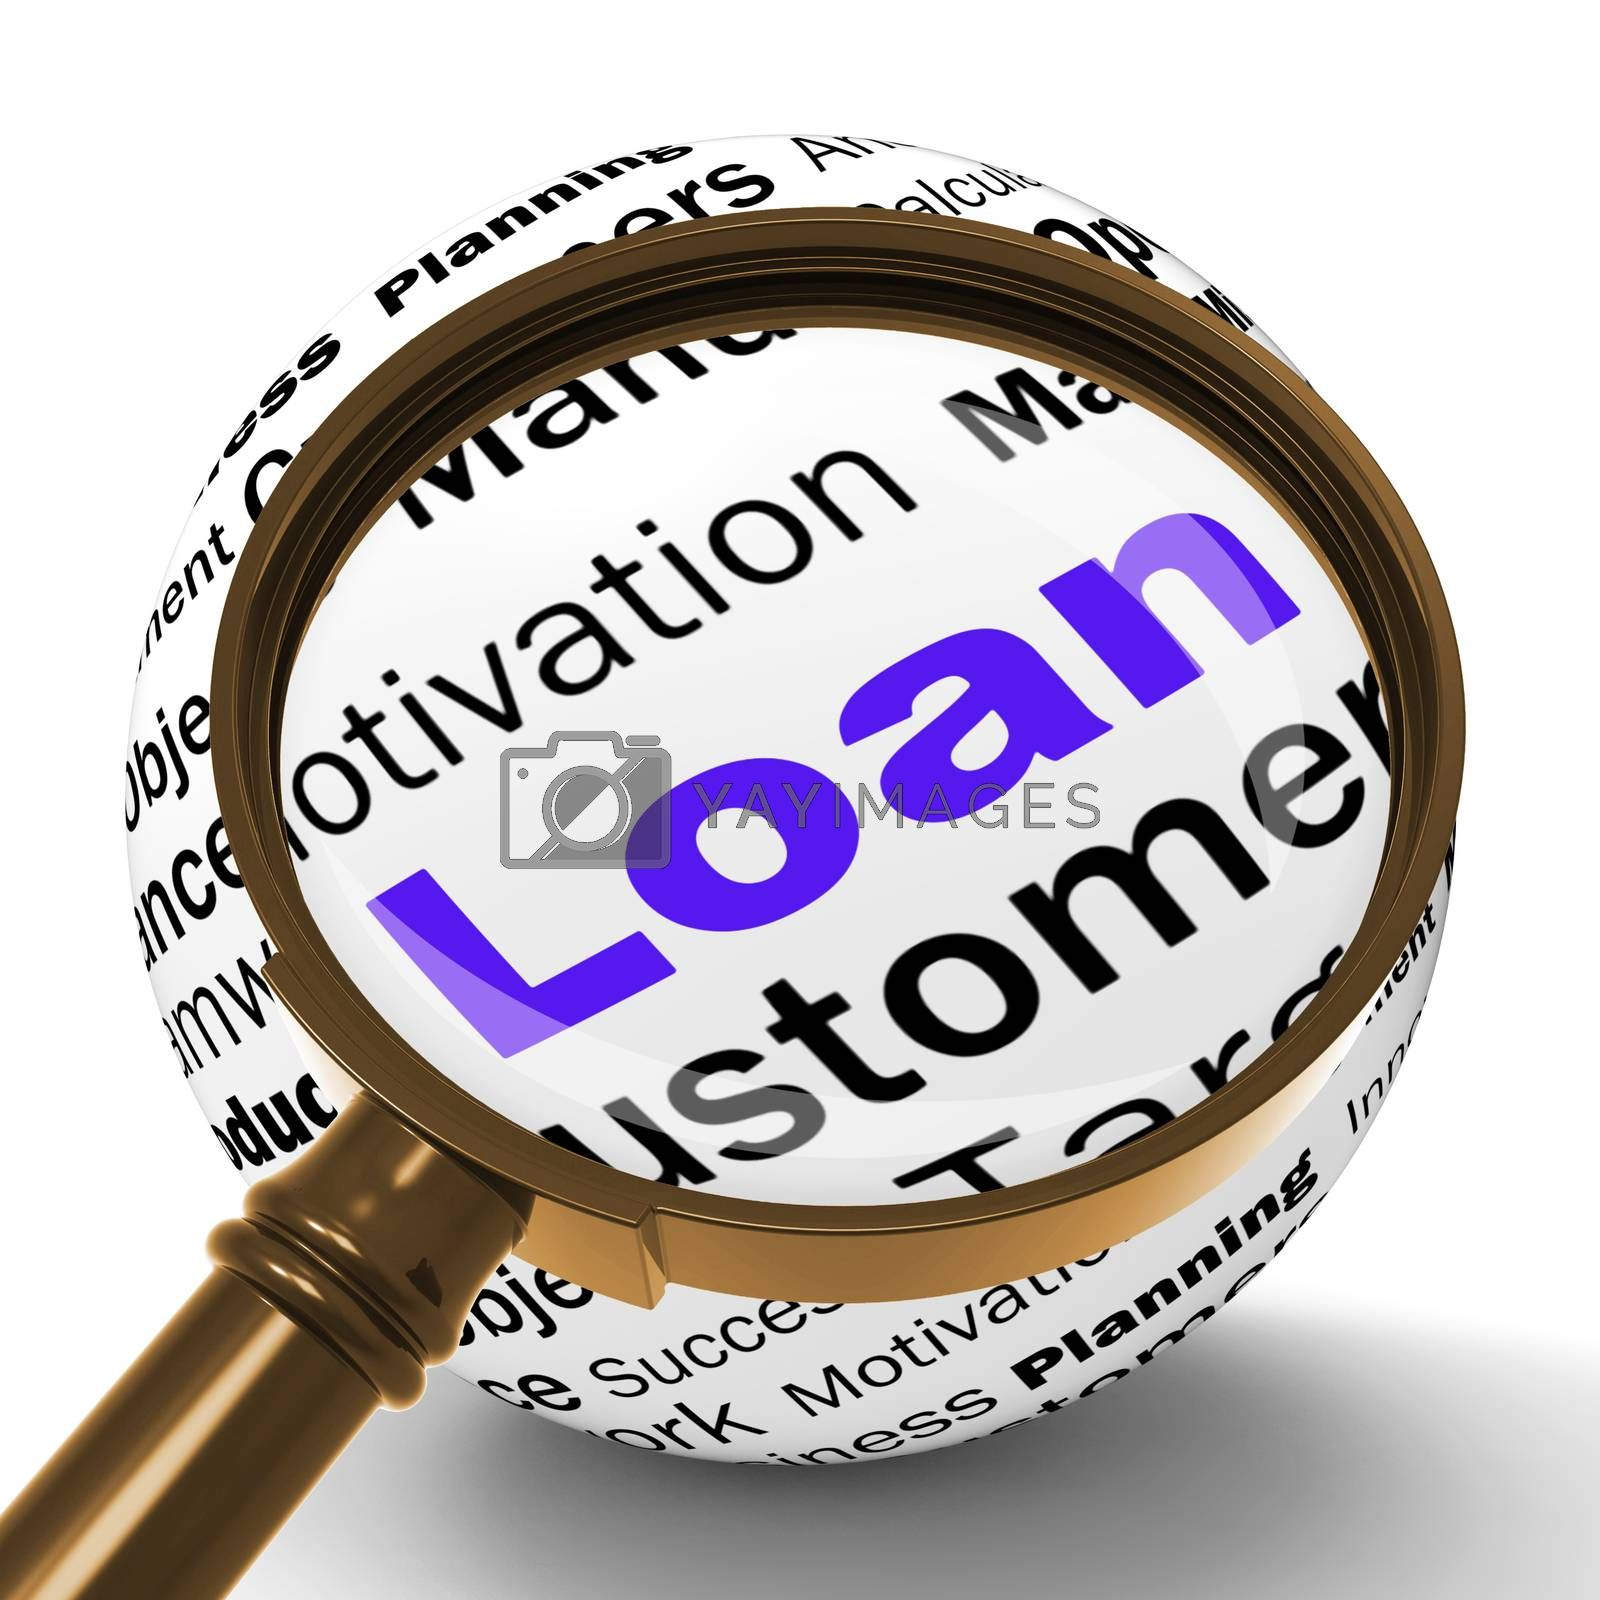 Loan Magnifier Definition Means Bank Credit Or Funding by stuartmiles